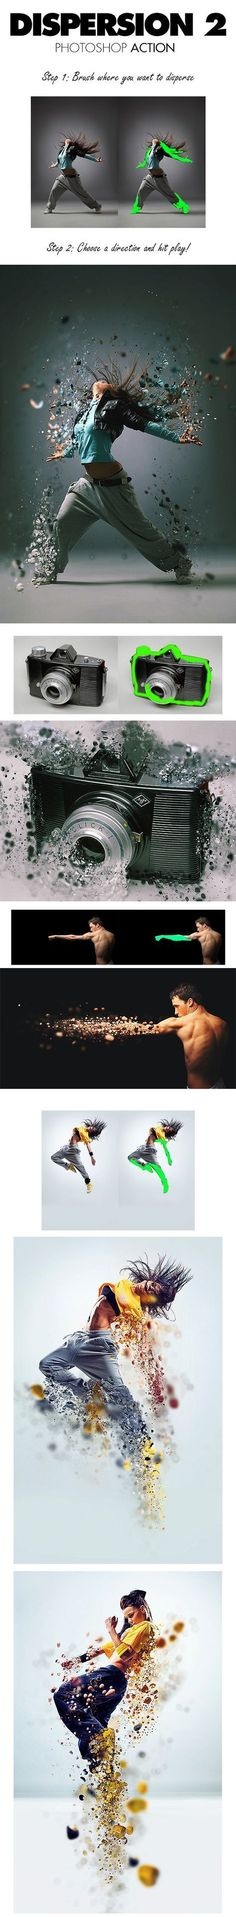 Buy Dispersion 2 Photoshop Action by sevenstyles on GraphicRiver. Please watch the above video for a demonstration of the action and customization tutorial Other actions you may like. Photography Cheat Sheets, Photography Editing, Book Photography, Photography Tutorials, Creative Photography, Photo Editing, Action Photography, Effects Photoshop, Photoshop Tutorial